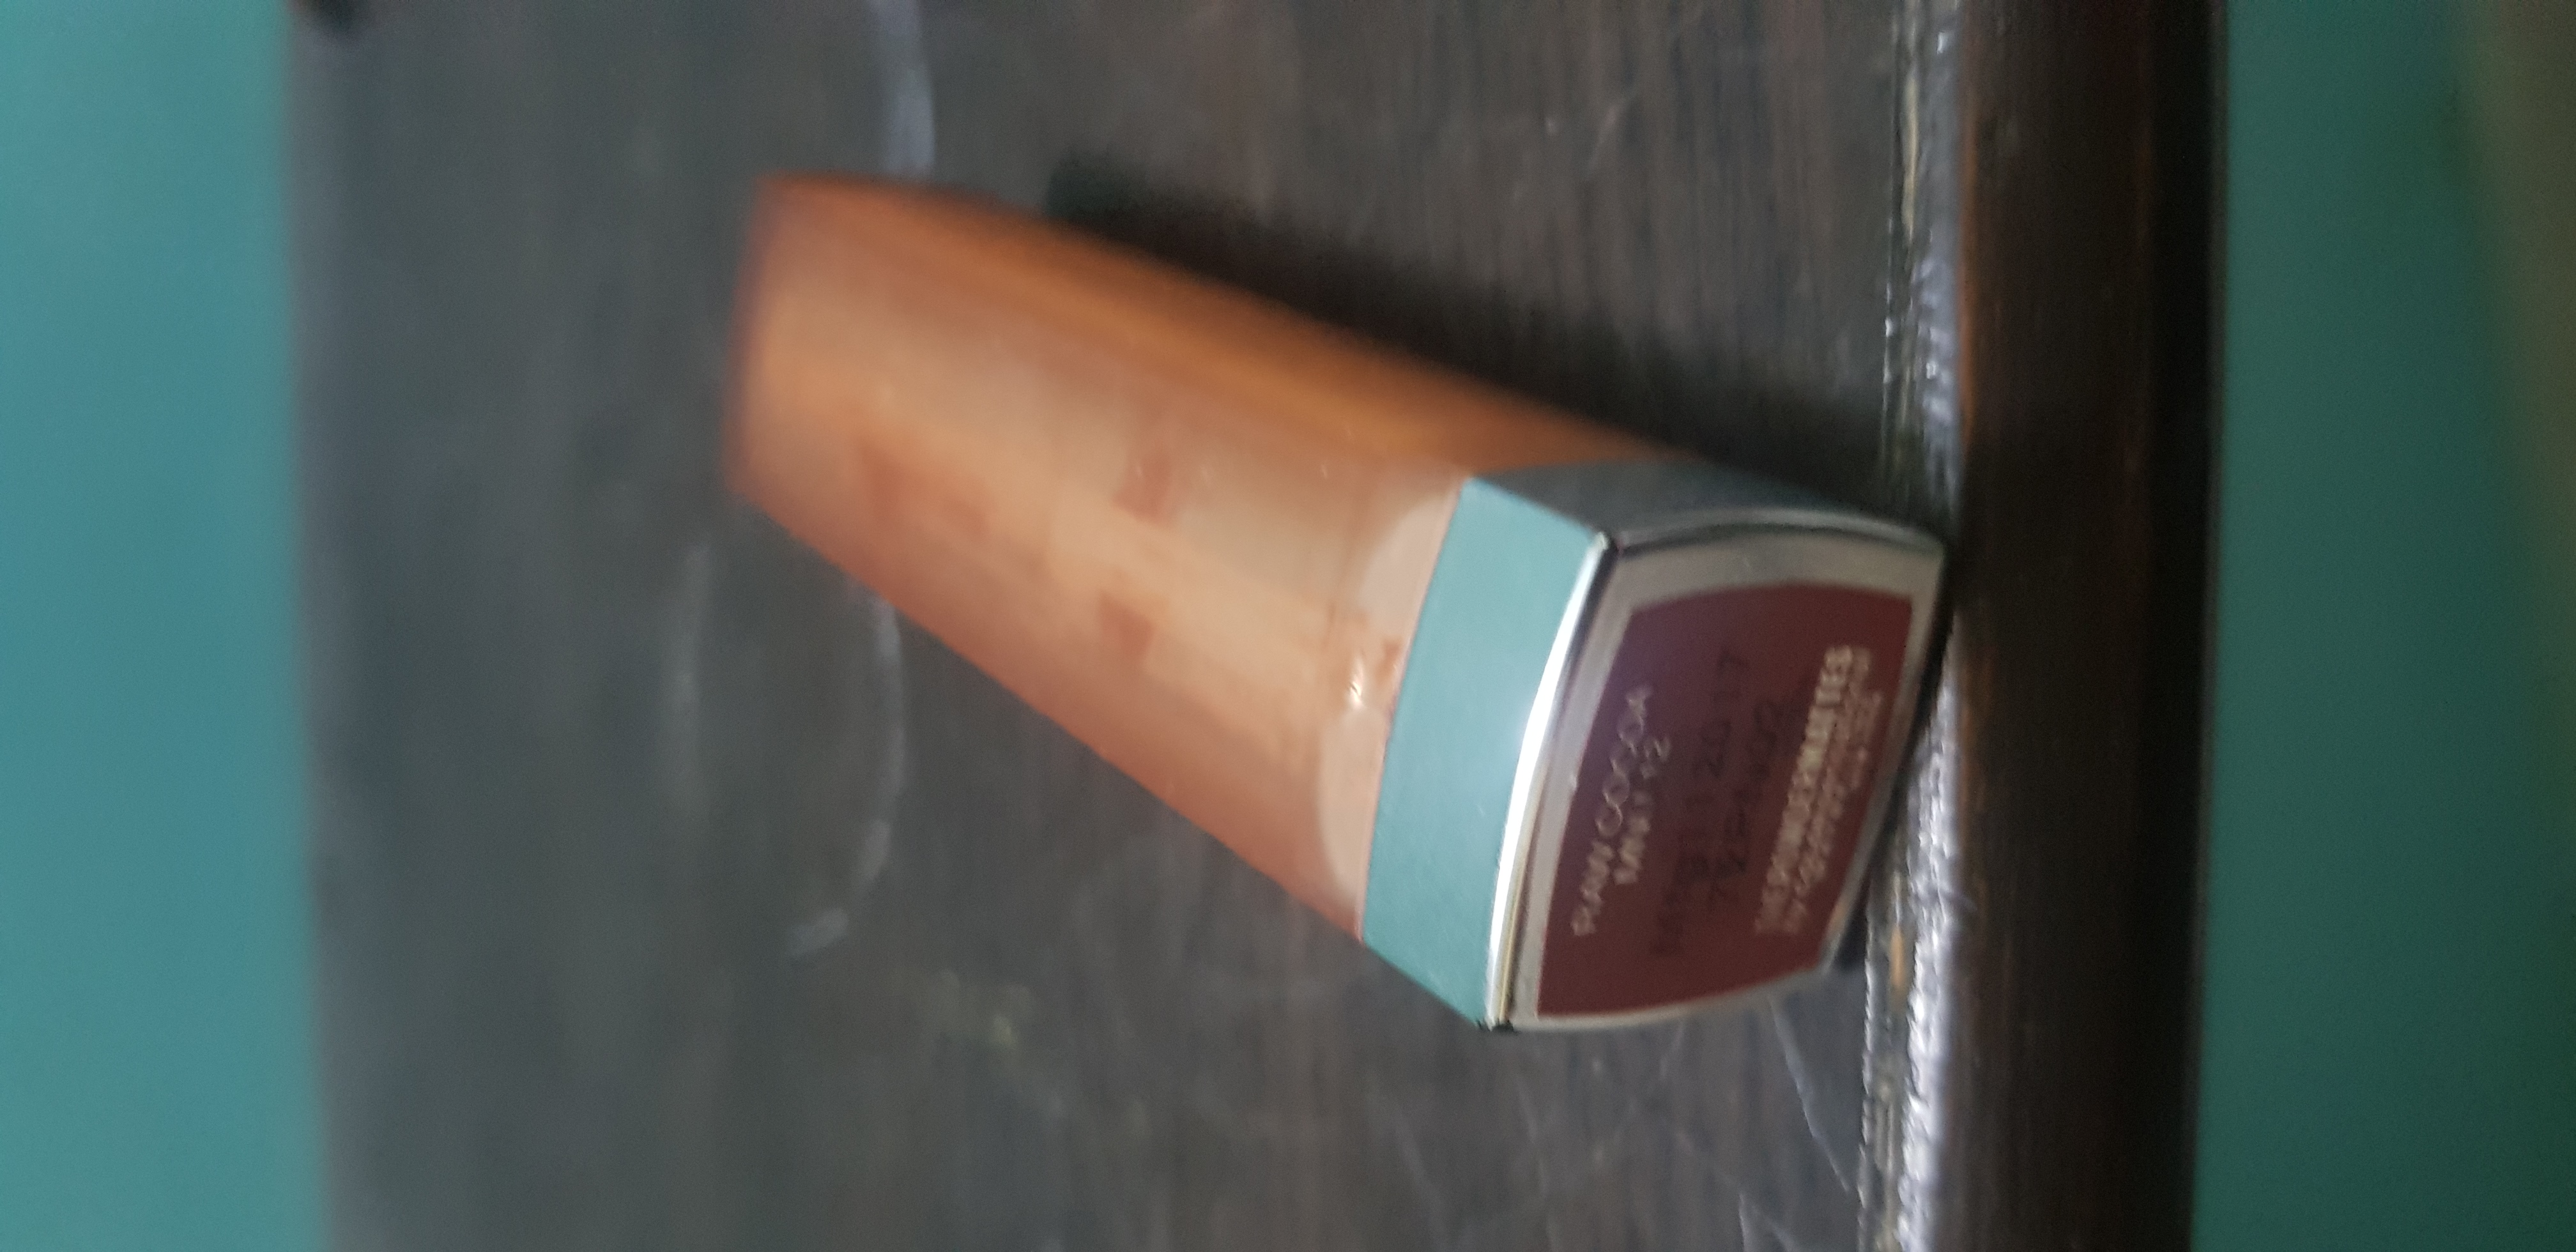 Maybelline New York Color Sensational Powder Matte Lipstick-Worst lipstick-By avyuktha